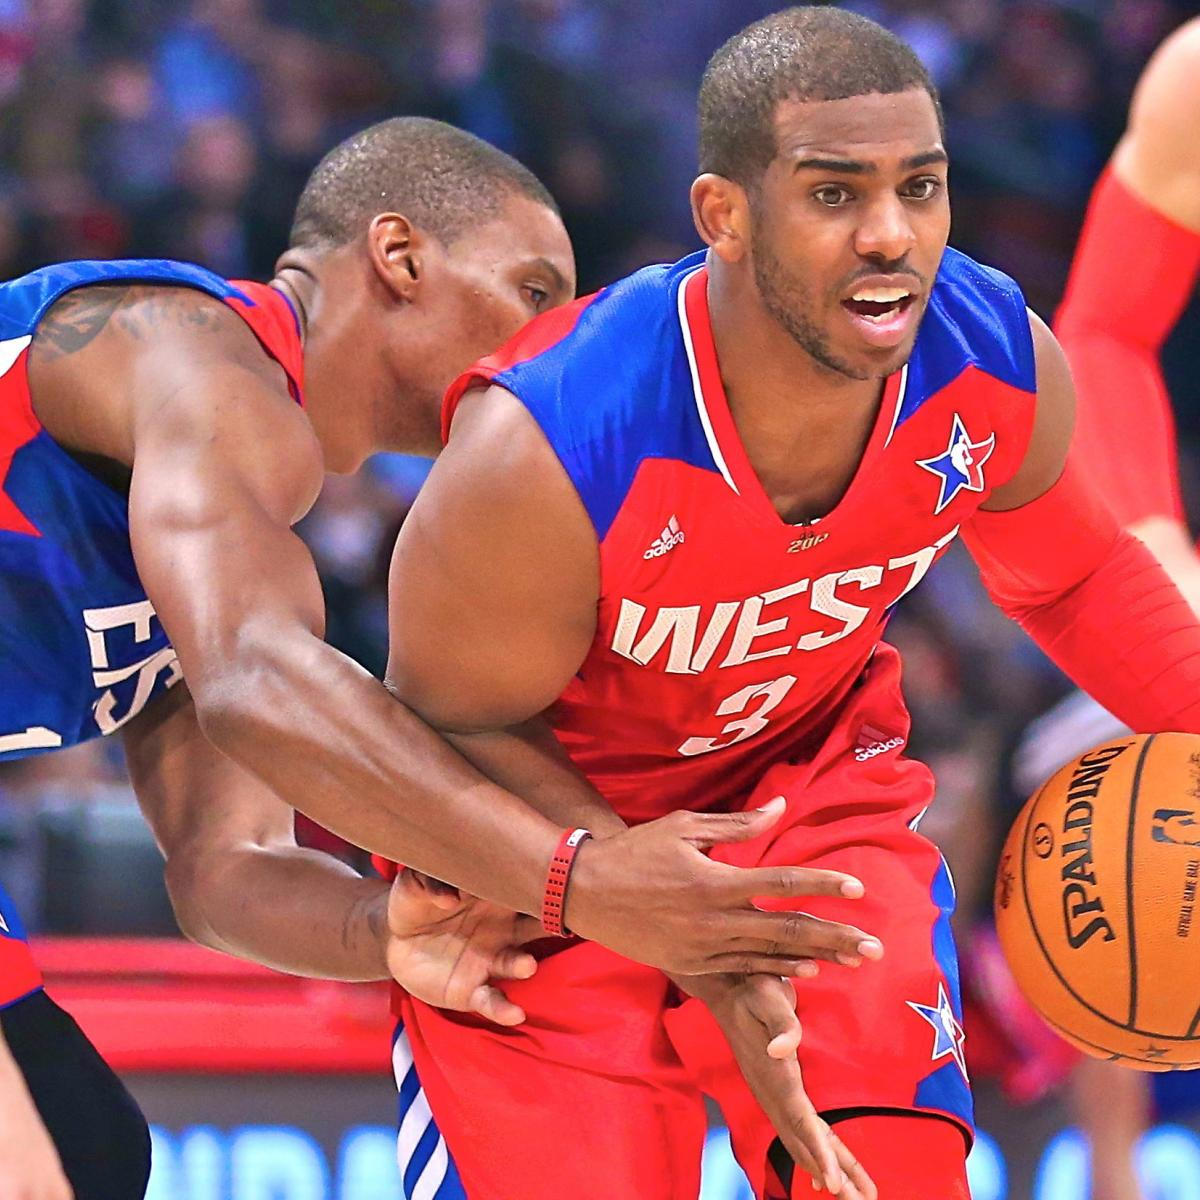 Western Conference Defeats Eastern Conference To Win 2013